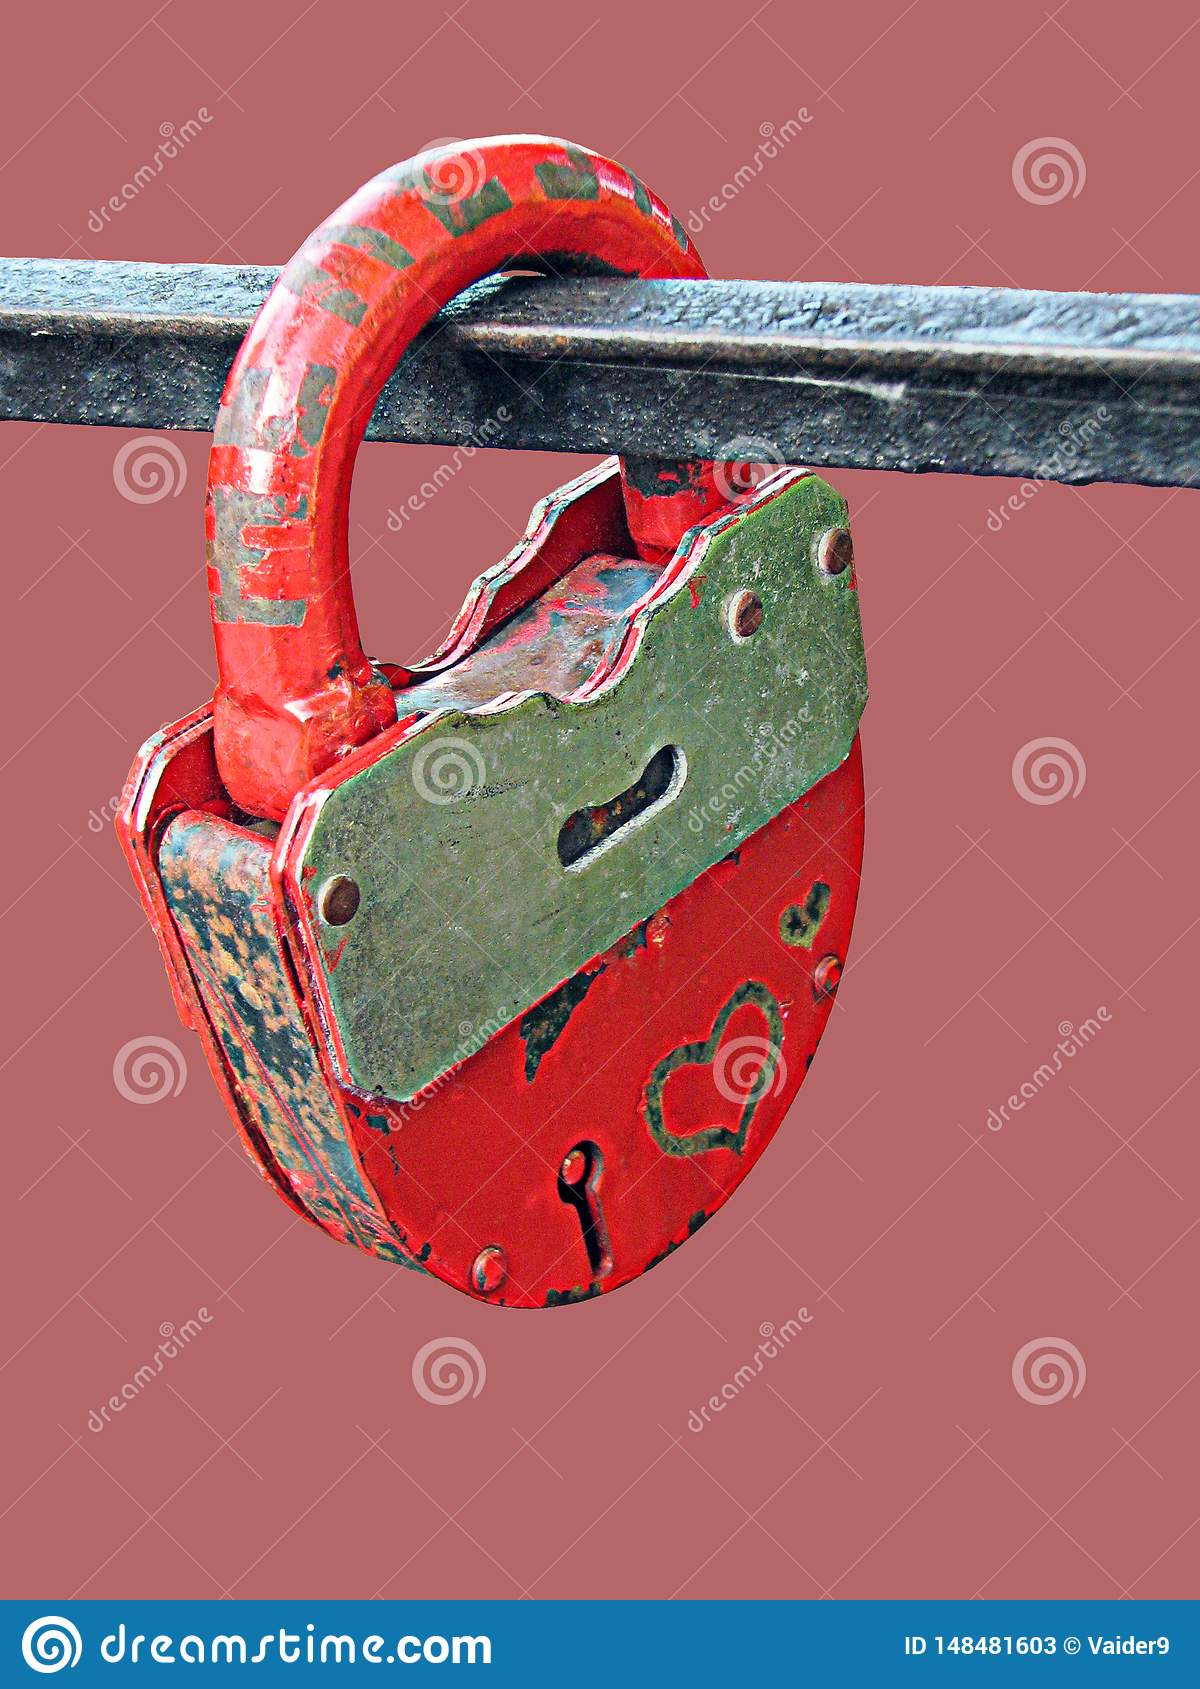 Old rusty iron padlock on pink background